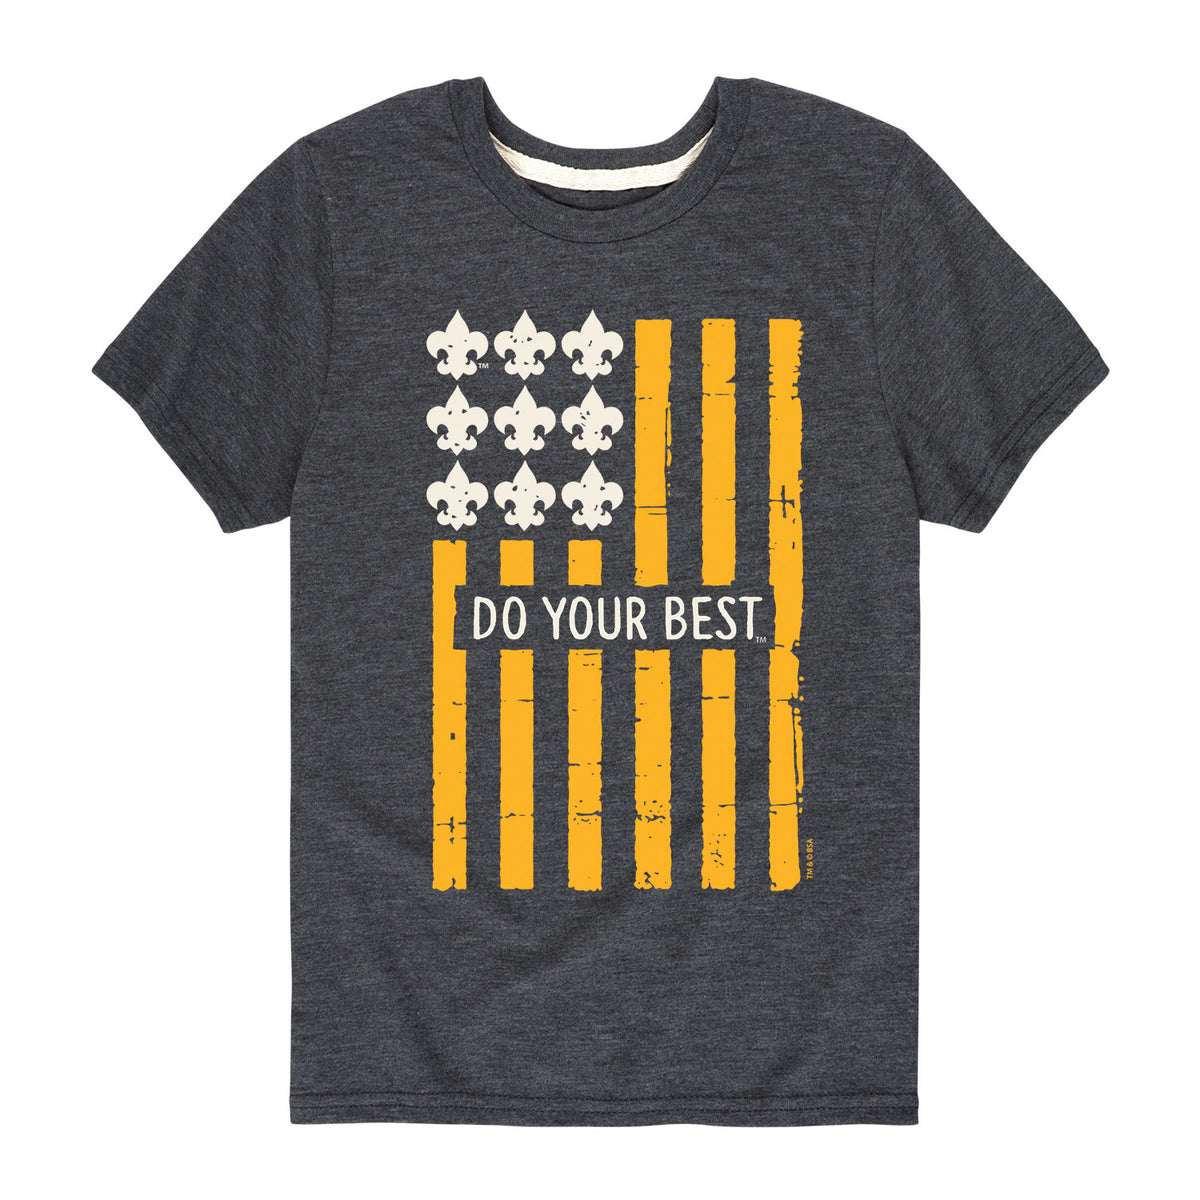 Do Your Best - Youth Short Sleeve T-Shirt